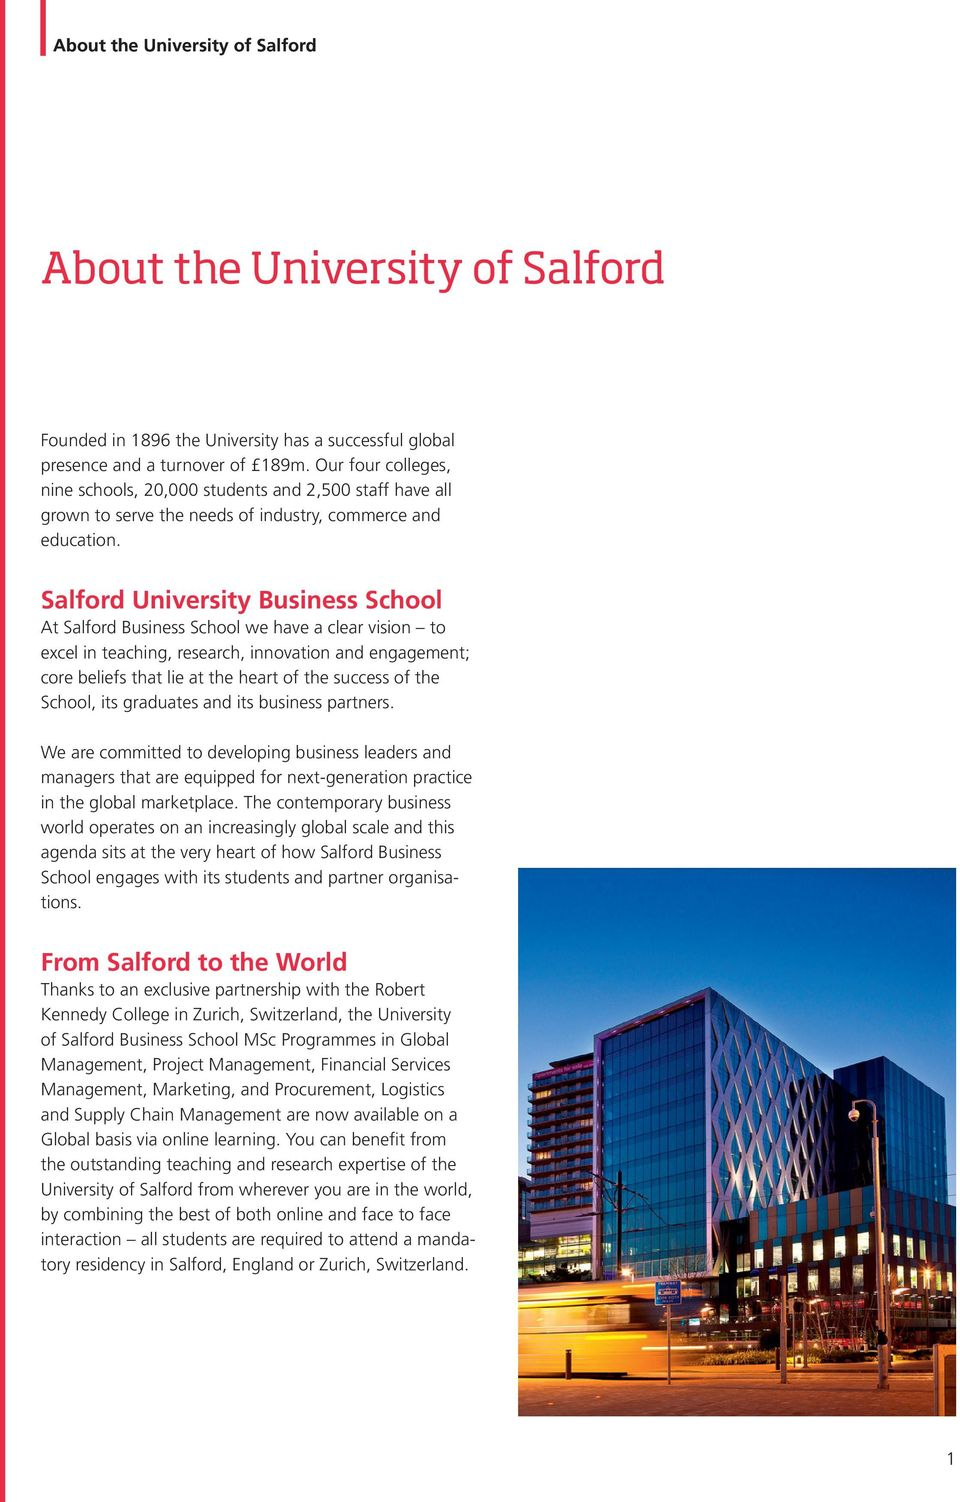 Salford University Business School At Salford Business School we have a clear vision to excel in teaching, research, innovation and engagement; core beliefs that lie at the heart of the success of